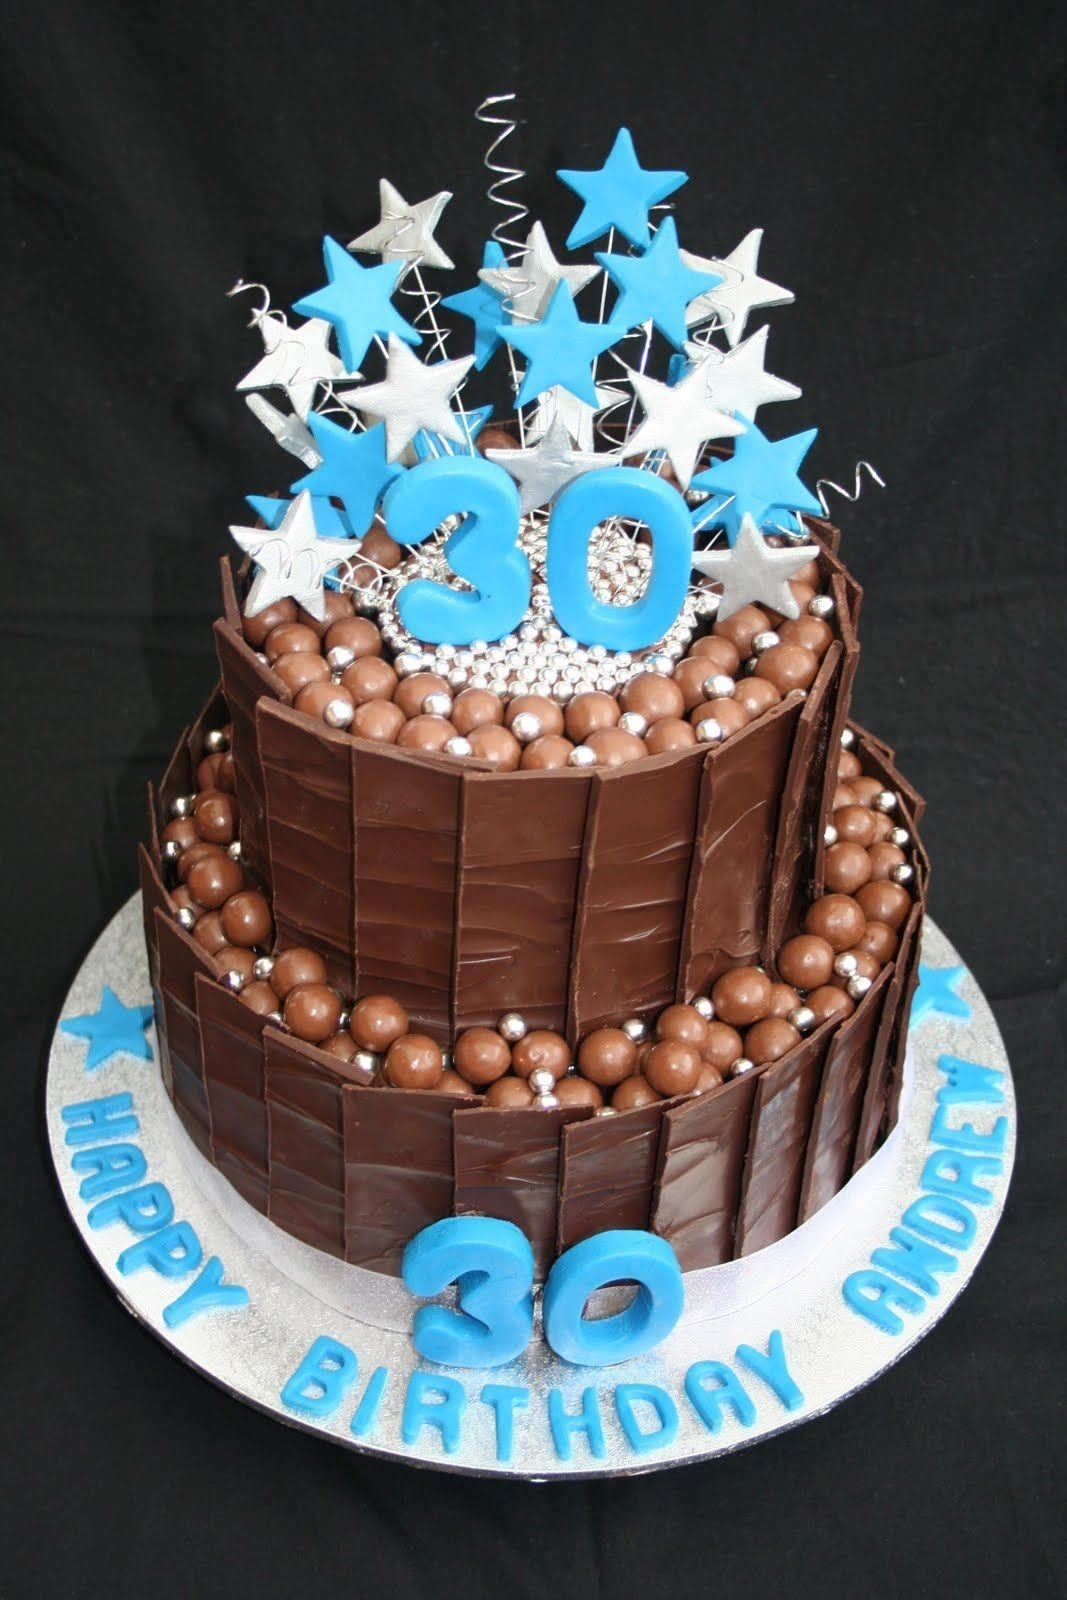 10 Stylish Easy Birthday Cake Ideas For Men 30th birthday cakes leonies cakes and parties 30th 3 2020